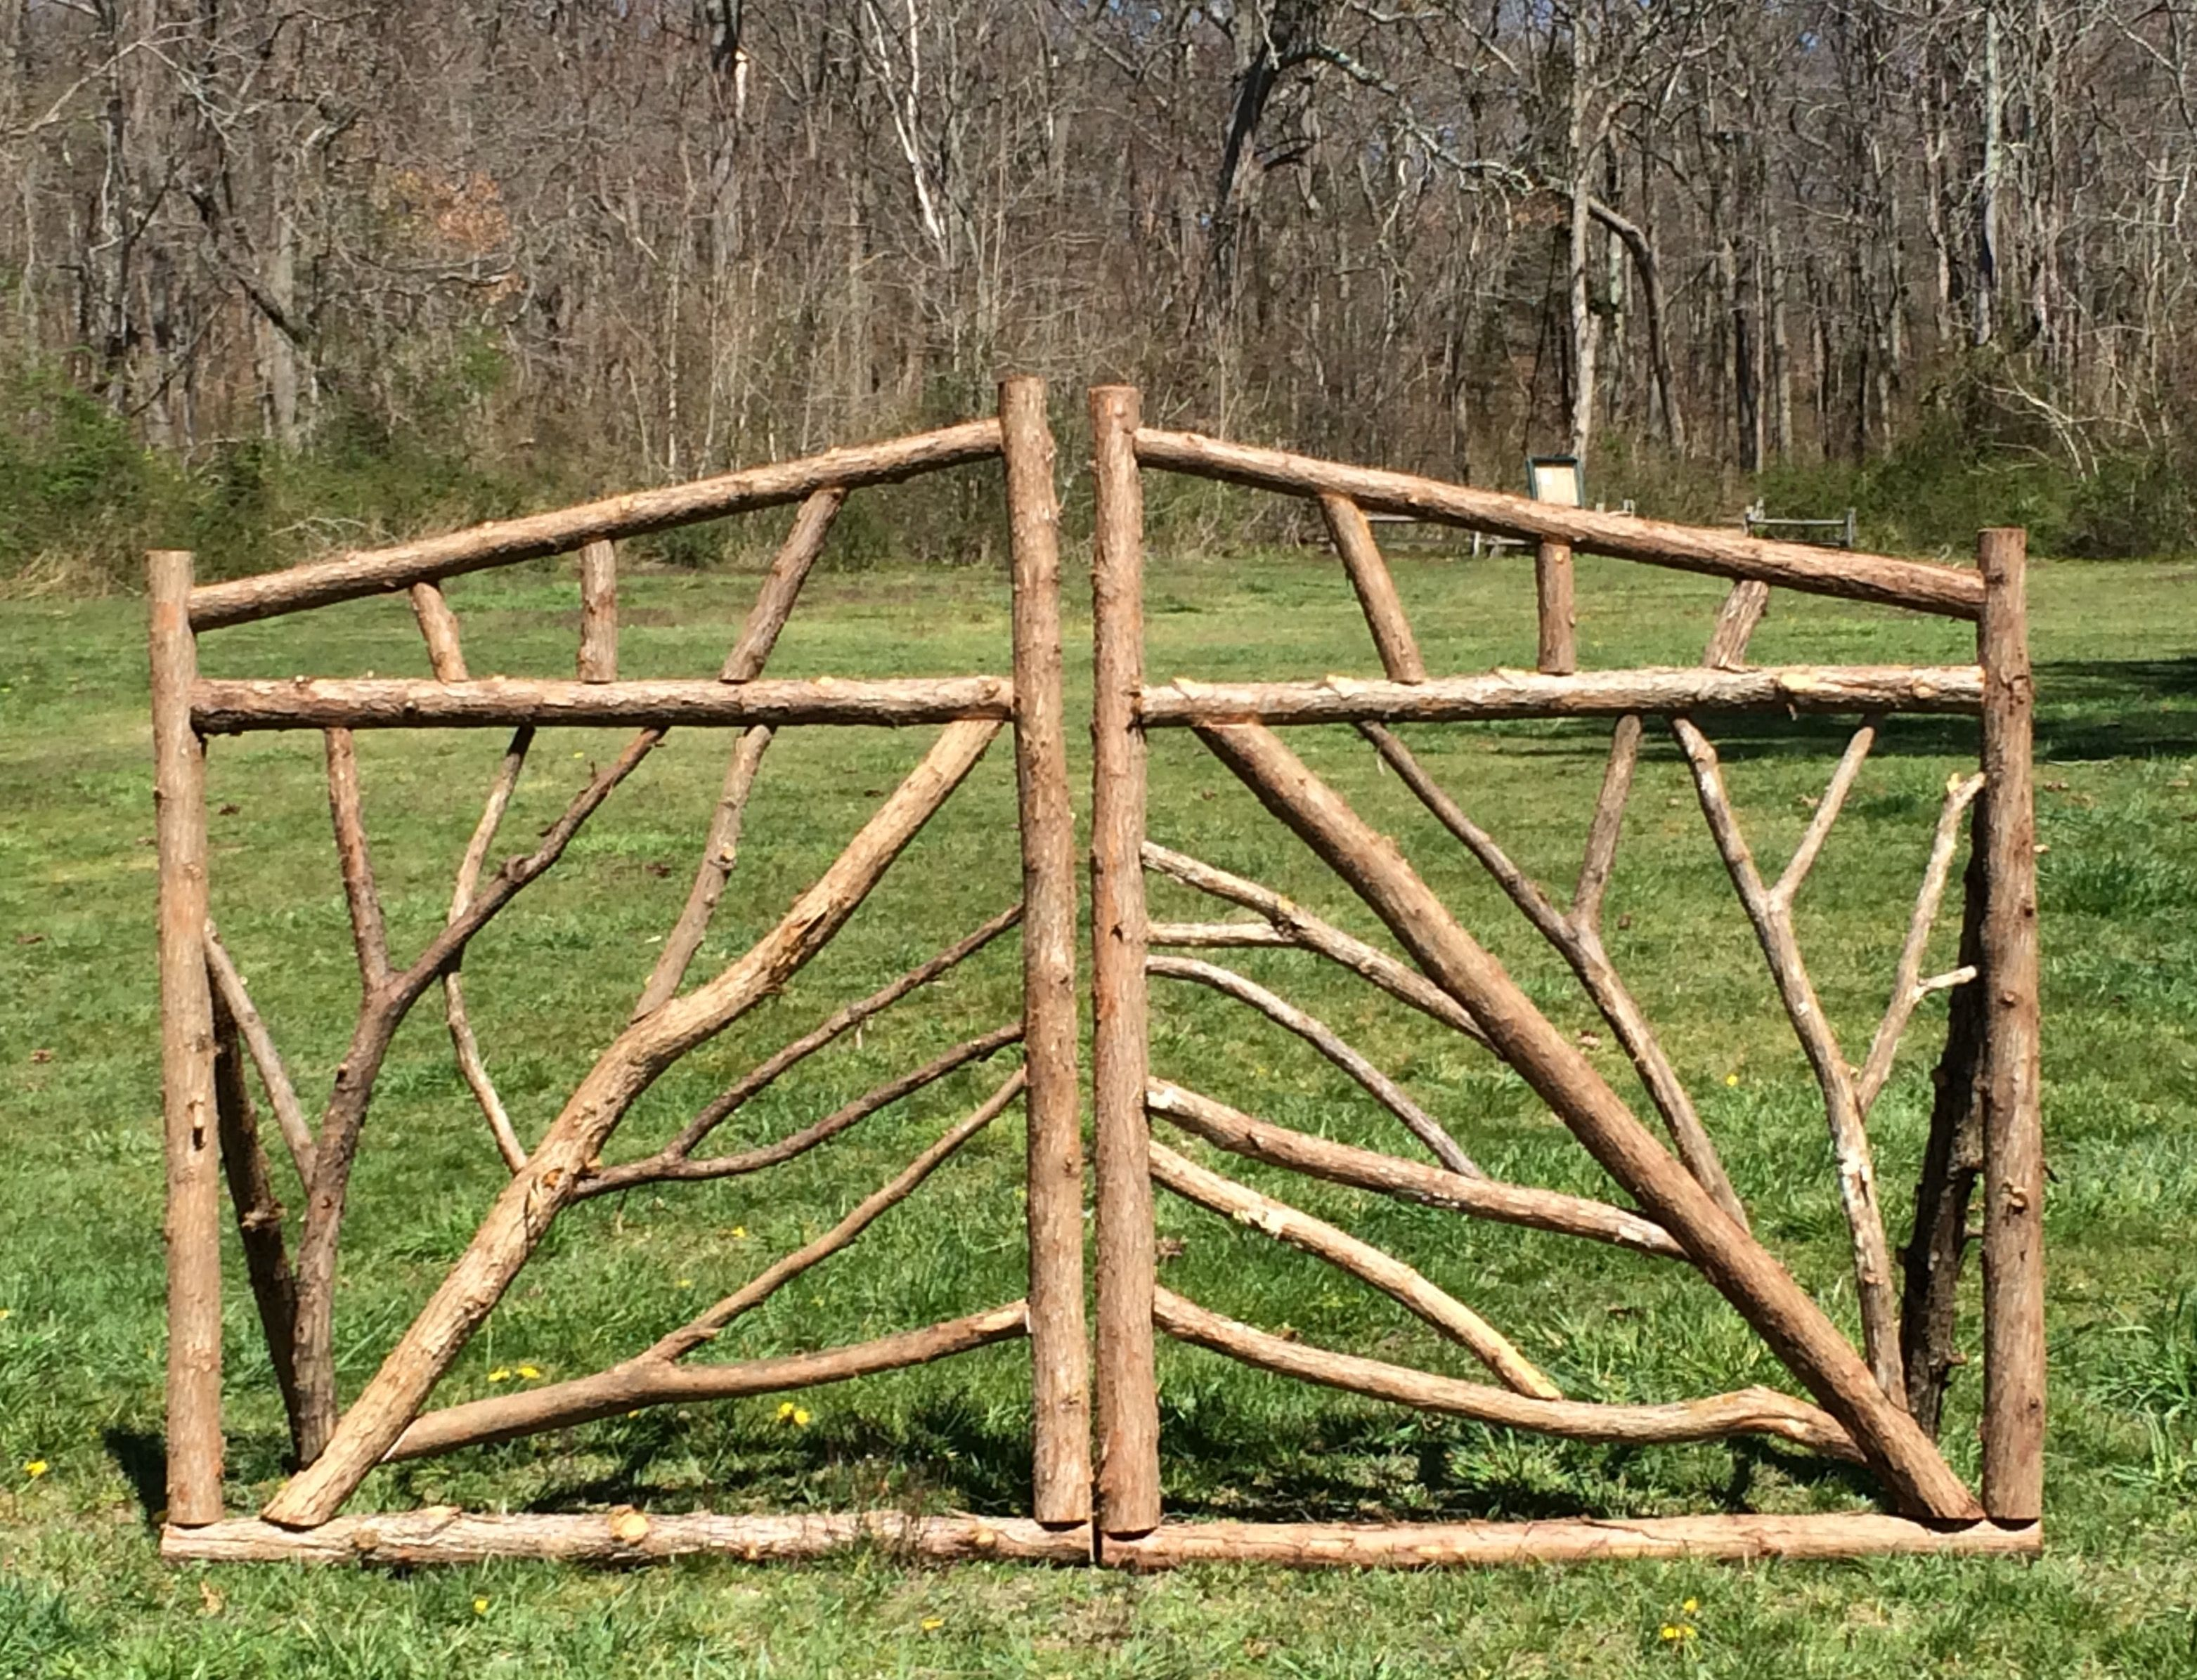 Wood Gardens, Rustic Gardens, Garden Doors, Garden Fencing, Fence Gate,  Privacy Fences, Rustic Crafts, Paths, Benches